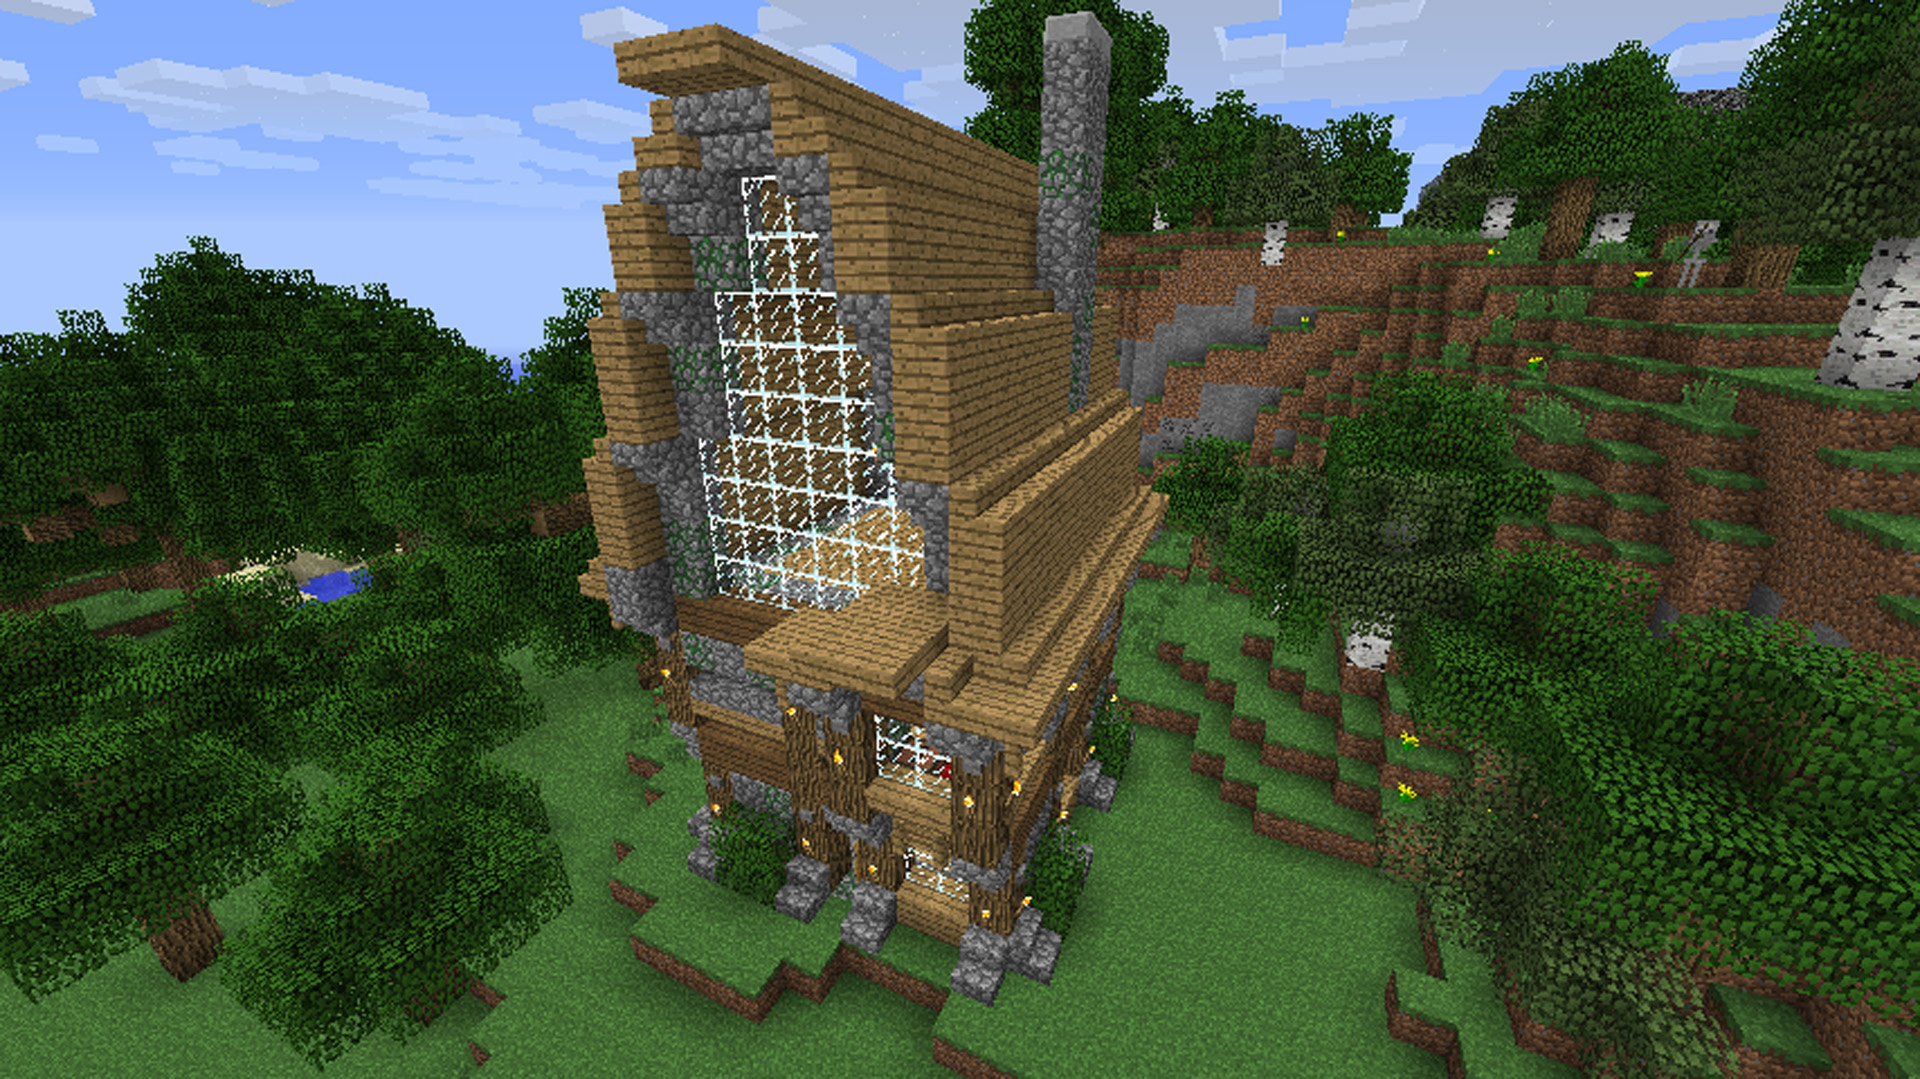 55buildinginminecraft